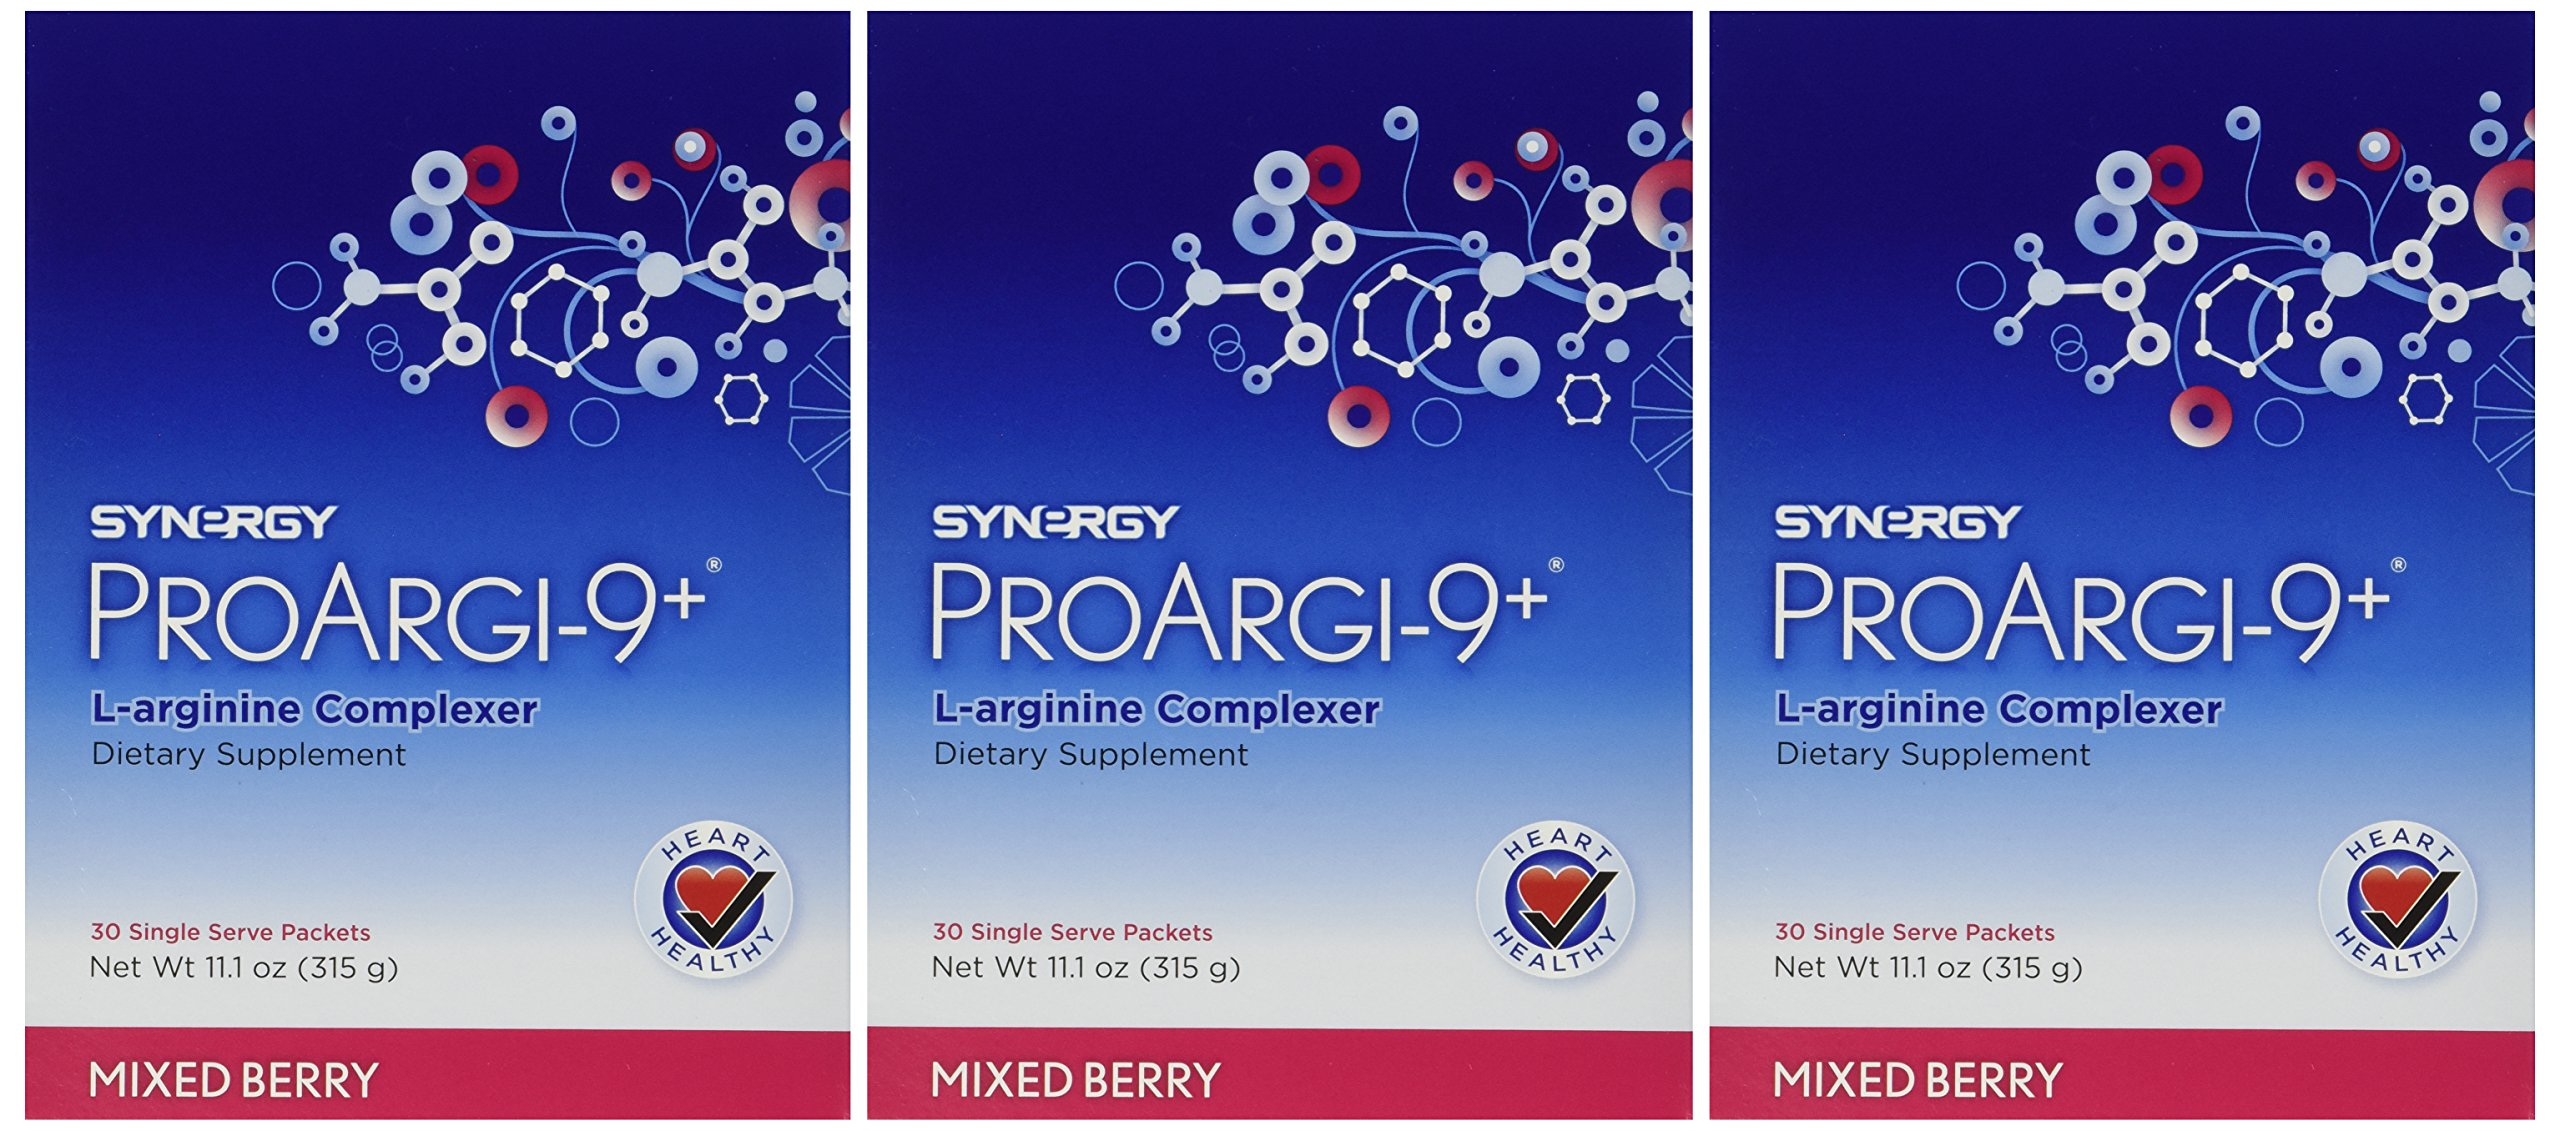 3 ProArgi 9 Plus Mixed Berry Single Serving Packets Support Heart Health (3) Boxes by 3 ProArgi 9 Plus Boxes